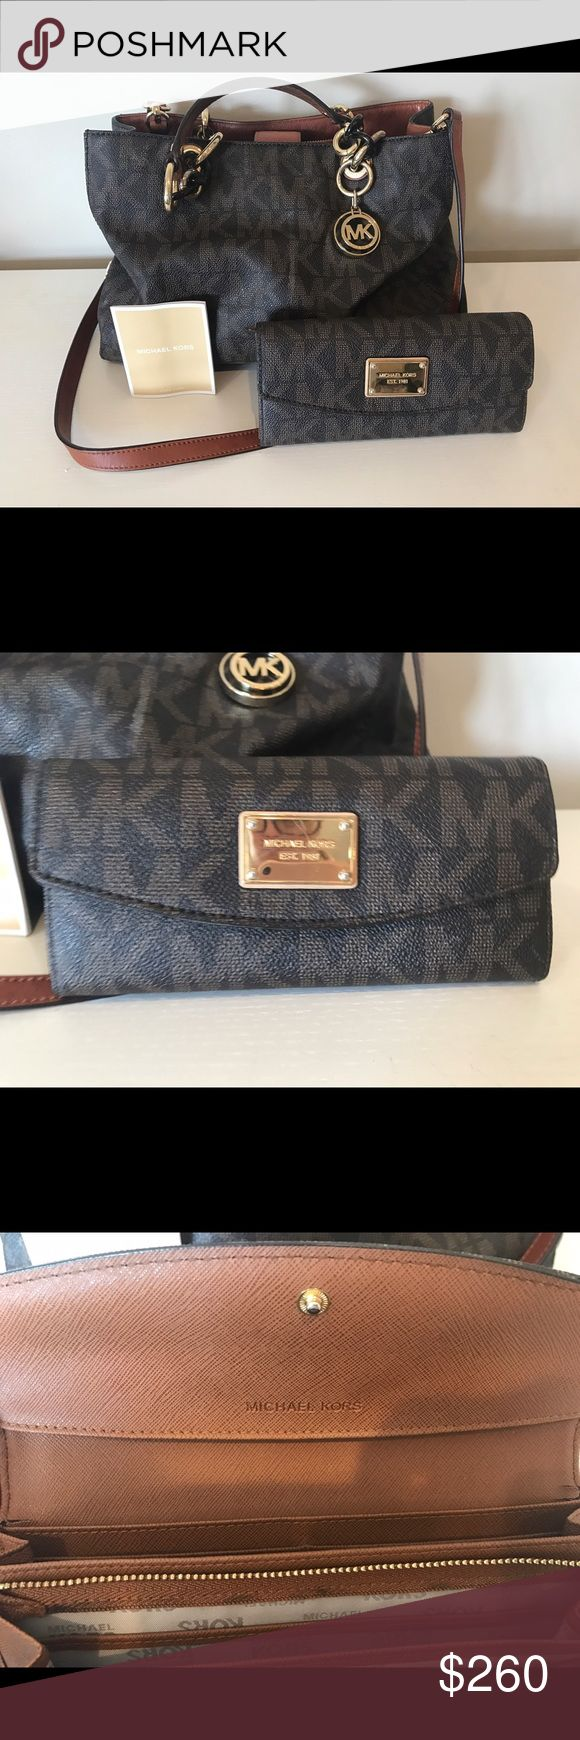 Matching Michael Kors Purse & Wallet Bought at Macy's last year; love this set, but needed something more practical with a baby! Smoke free home! .. wallet does have small scratch on surface of emblem. Bought the wallet for $198, purse was $298 Michael Kors Bags Satchels